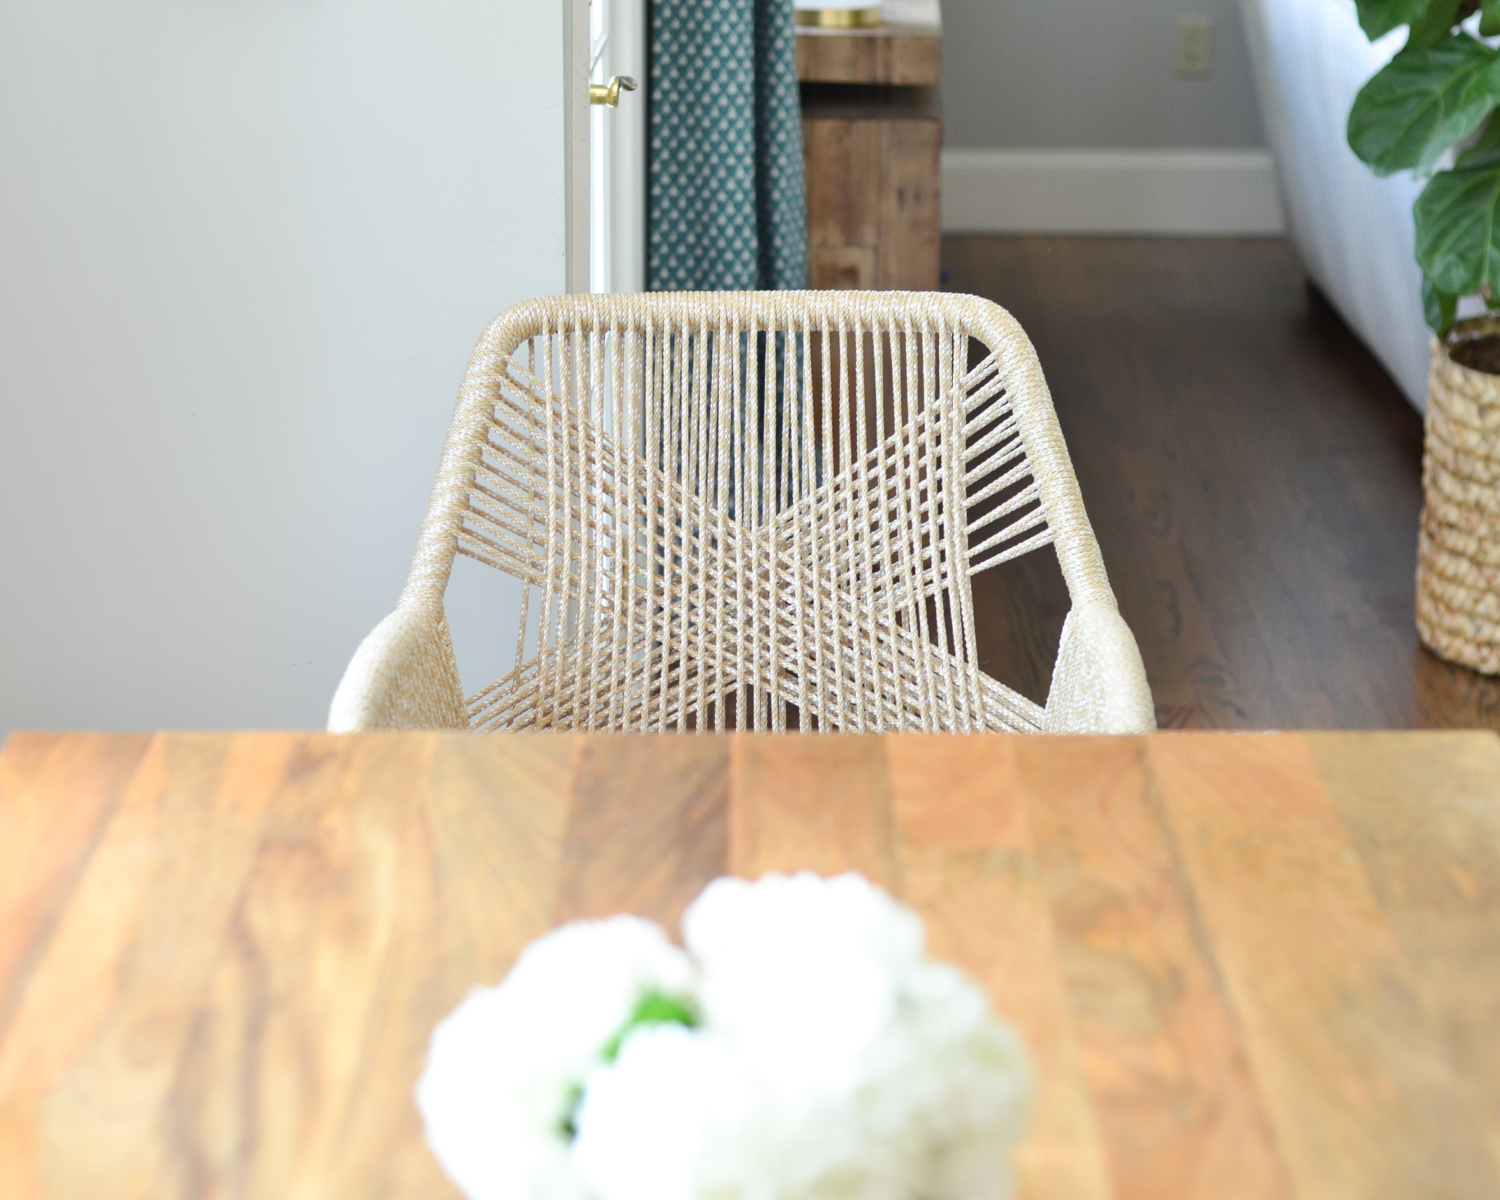 Beige rope chairs are a stunning addition to this chic yet family friendly breakfast nook makeover.